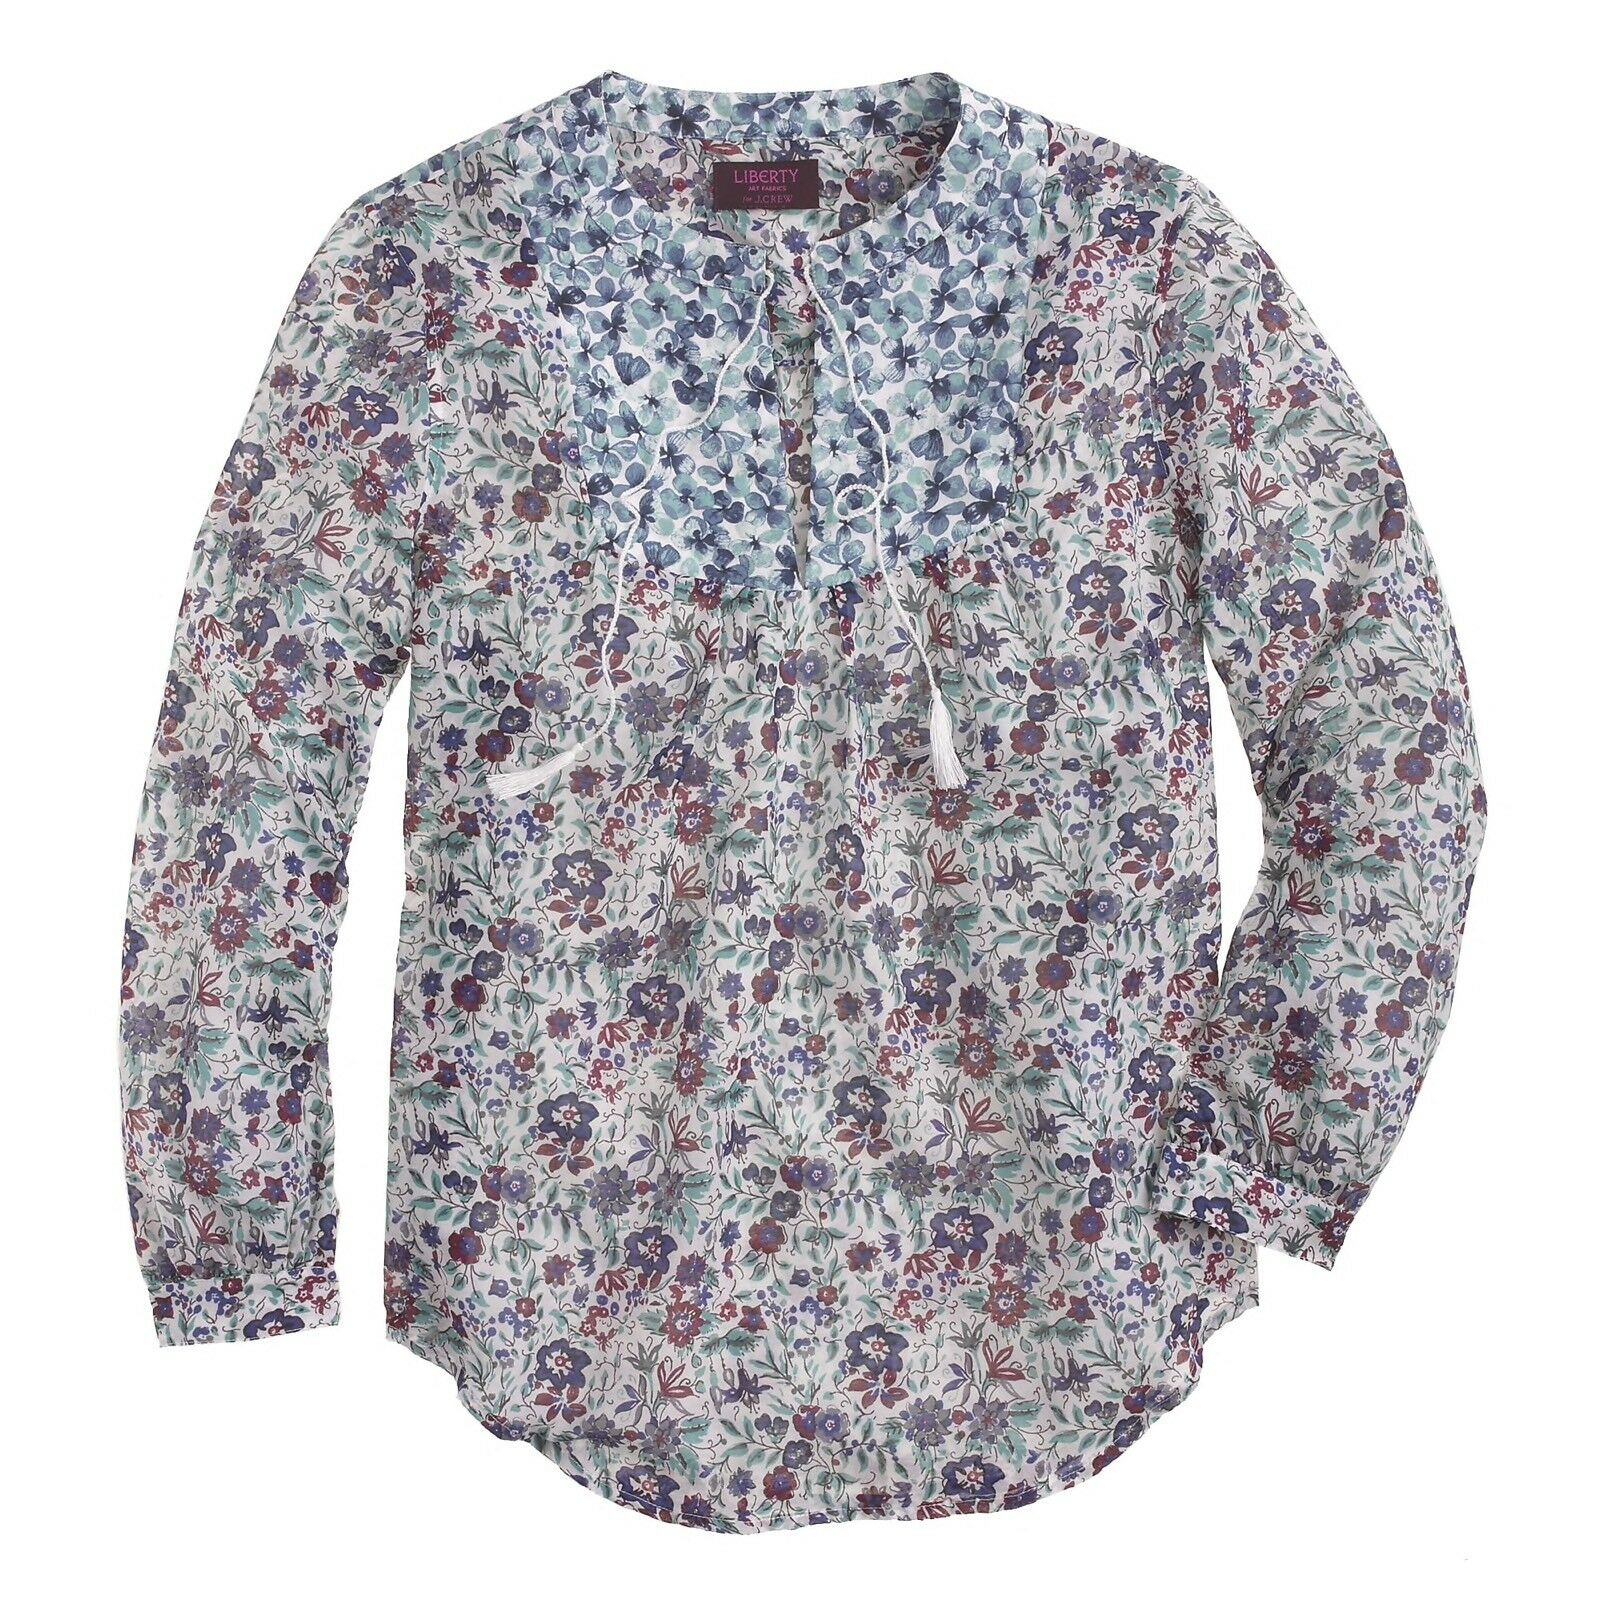 NWOT  J.CREW Größe 10 Liberty Peasant Top in Molly Floral Cotton Silk